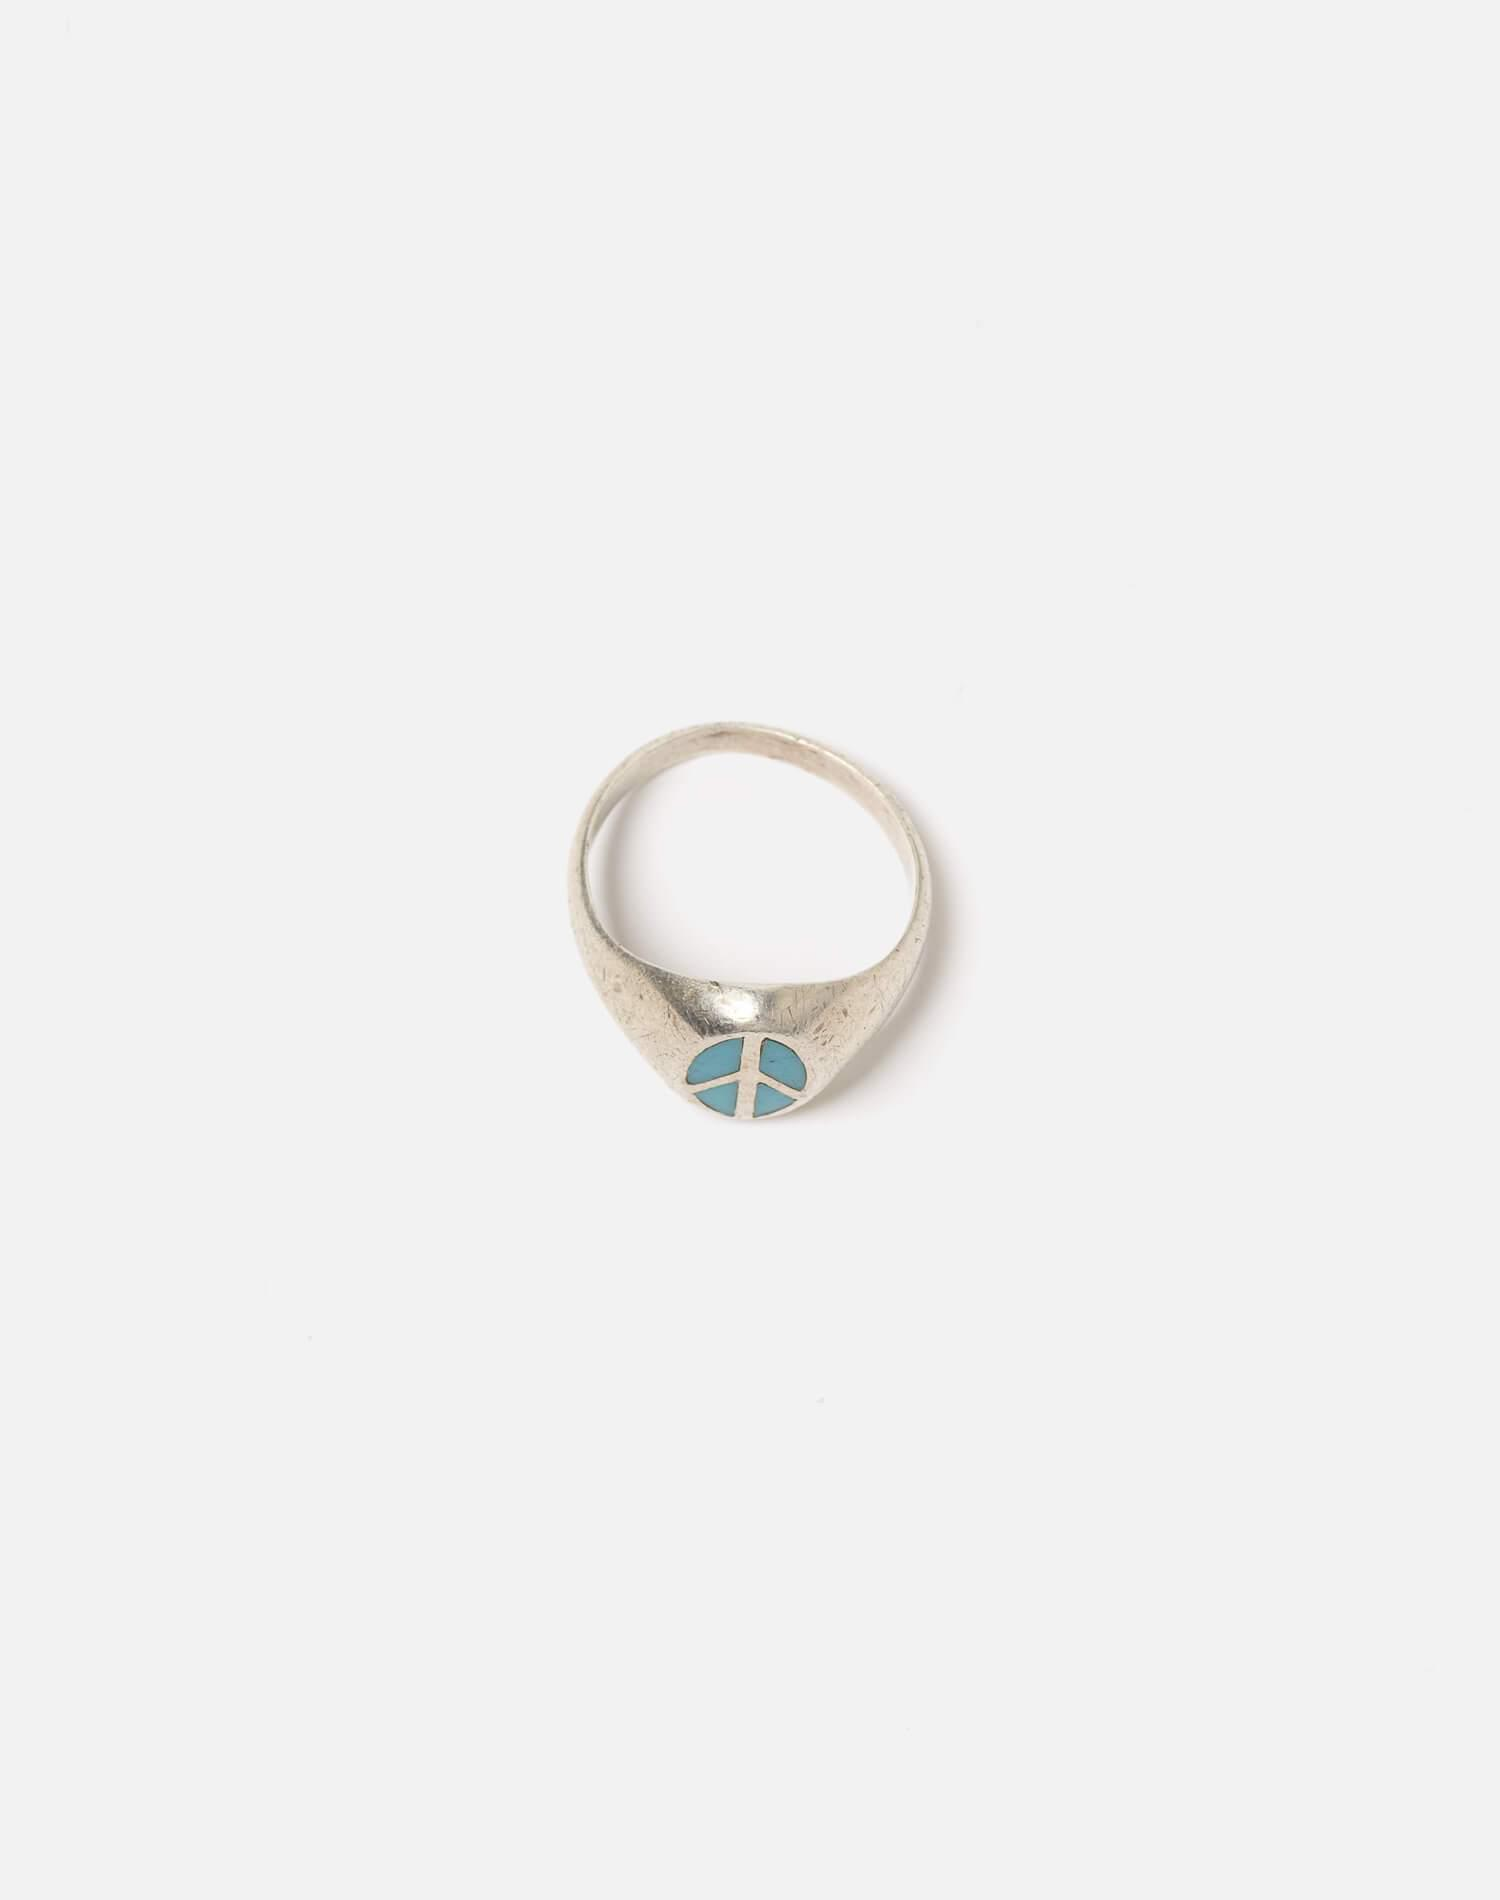 1960s Mexican Sterling Inlaid Turquoise Peace Sign Ring - #101 3